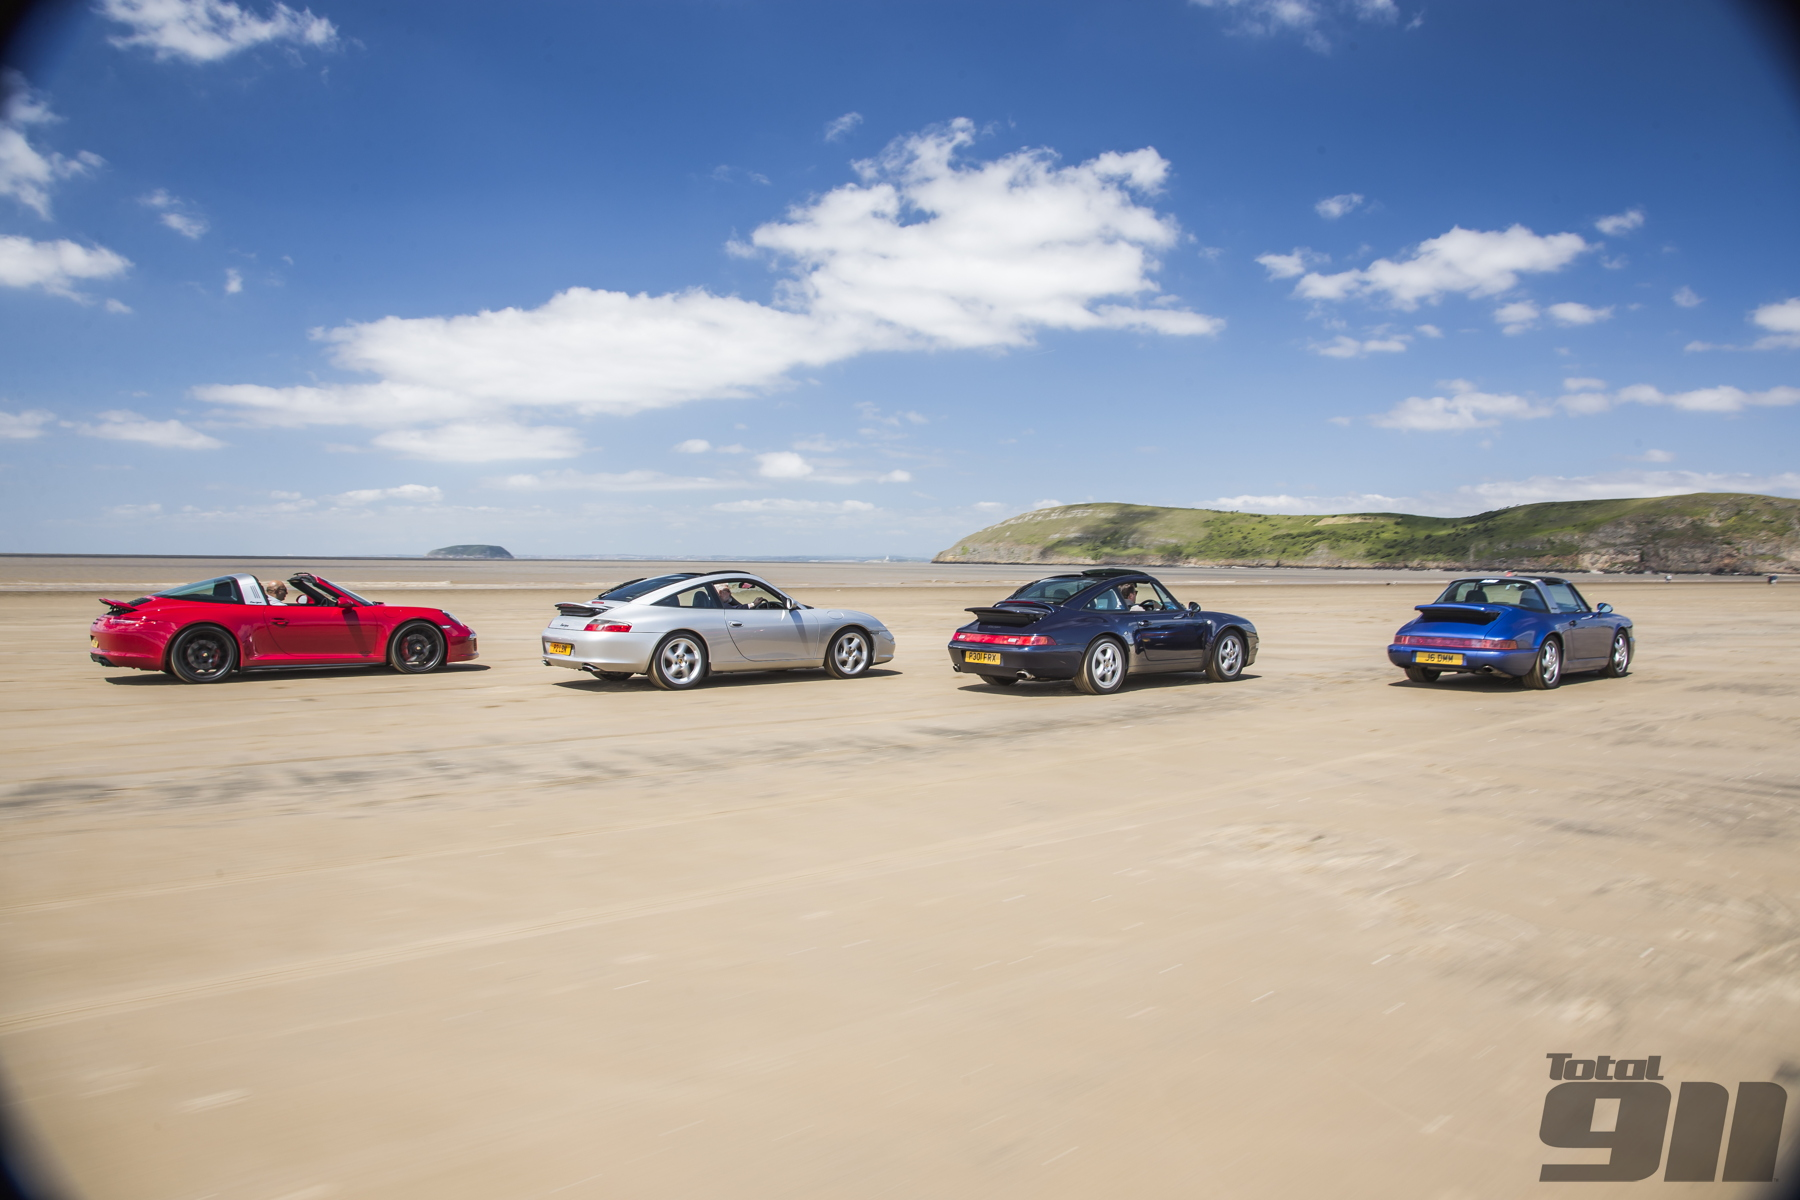 We head to the beach to chart the history of Porsche's open-top Targa concept.